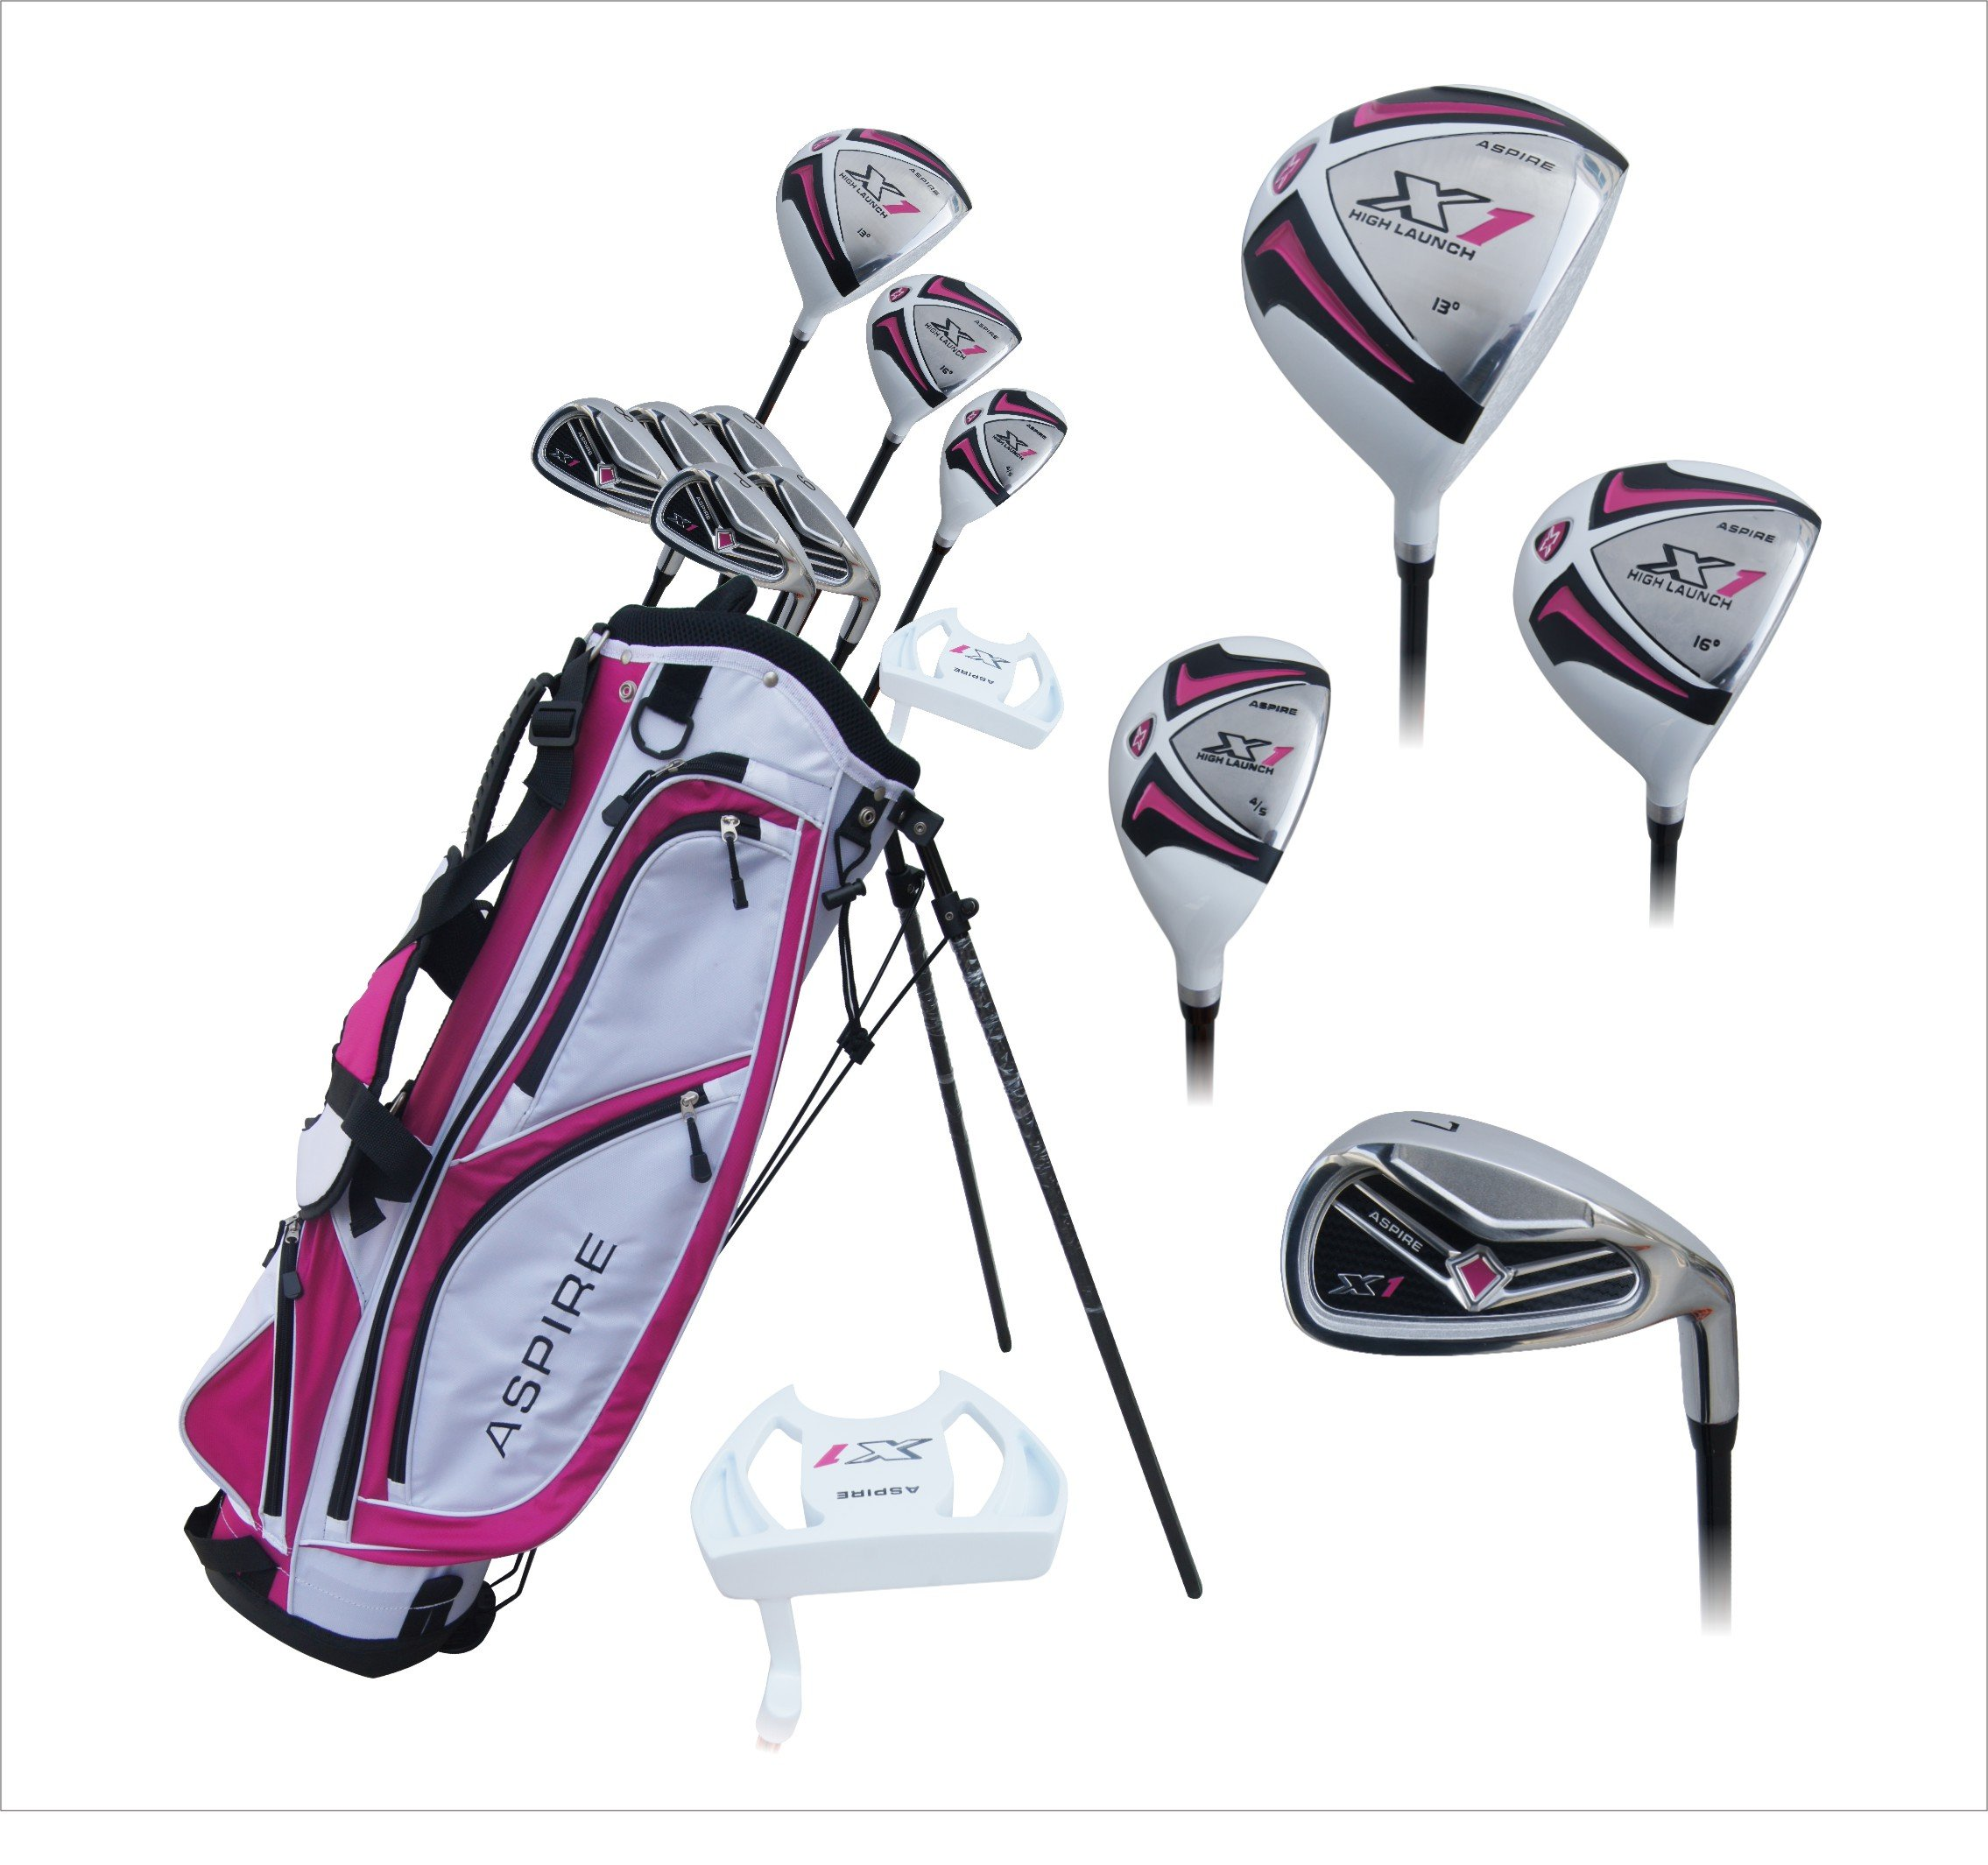 Aspire X1 Ladies Womens Complete Right Handed Golf Clubs Set Includes Driver, Fairway, Hybrid, 6-PW Irons, Putter, Stand Bag, 3 H/C's Cherry Pink Petite Size for Ladies 5'3'' and Below! by Aspire (Image #1)